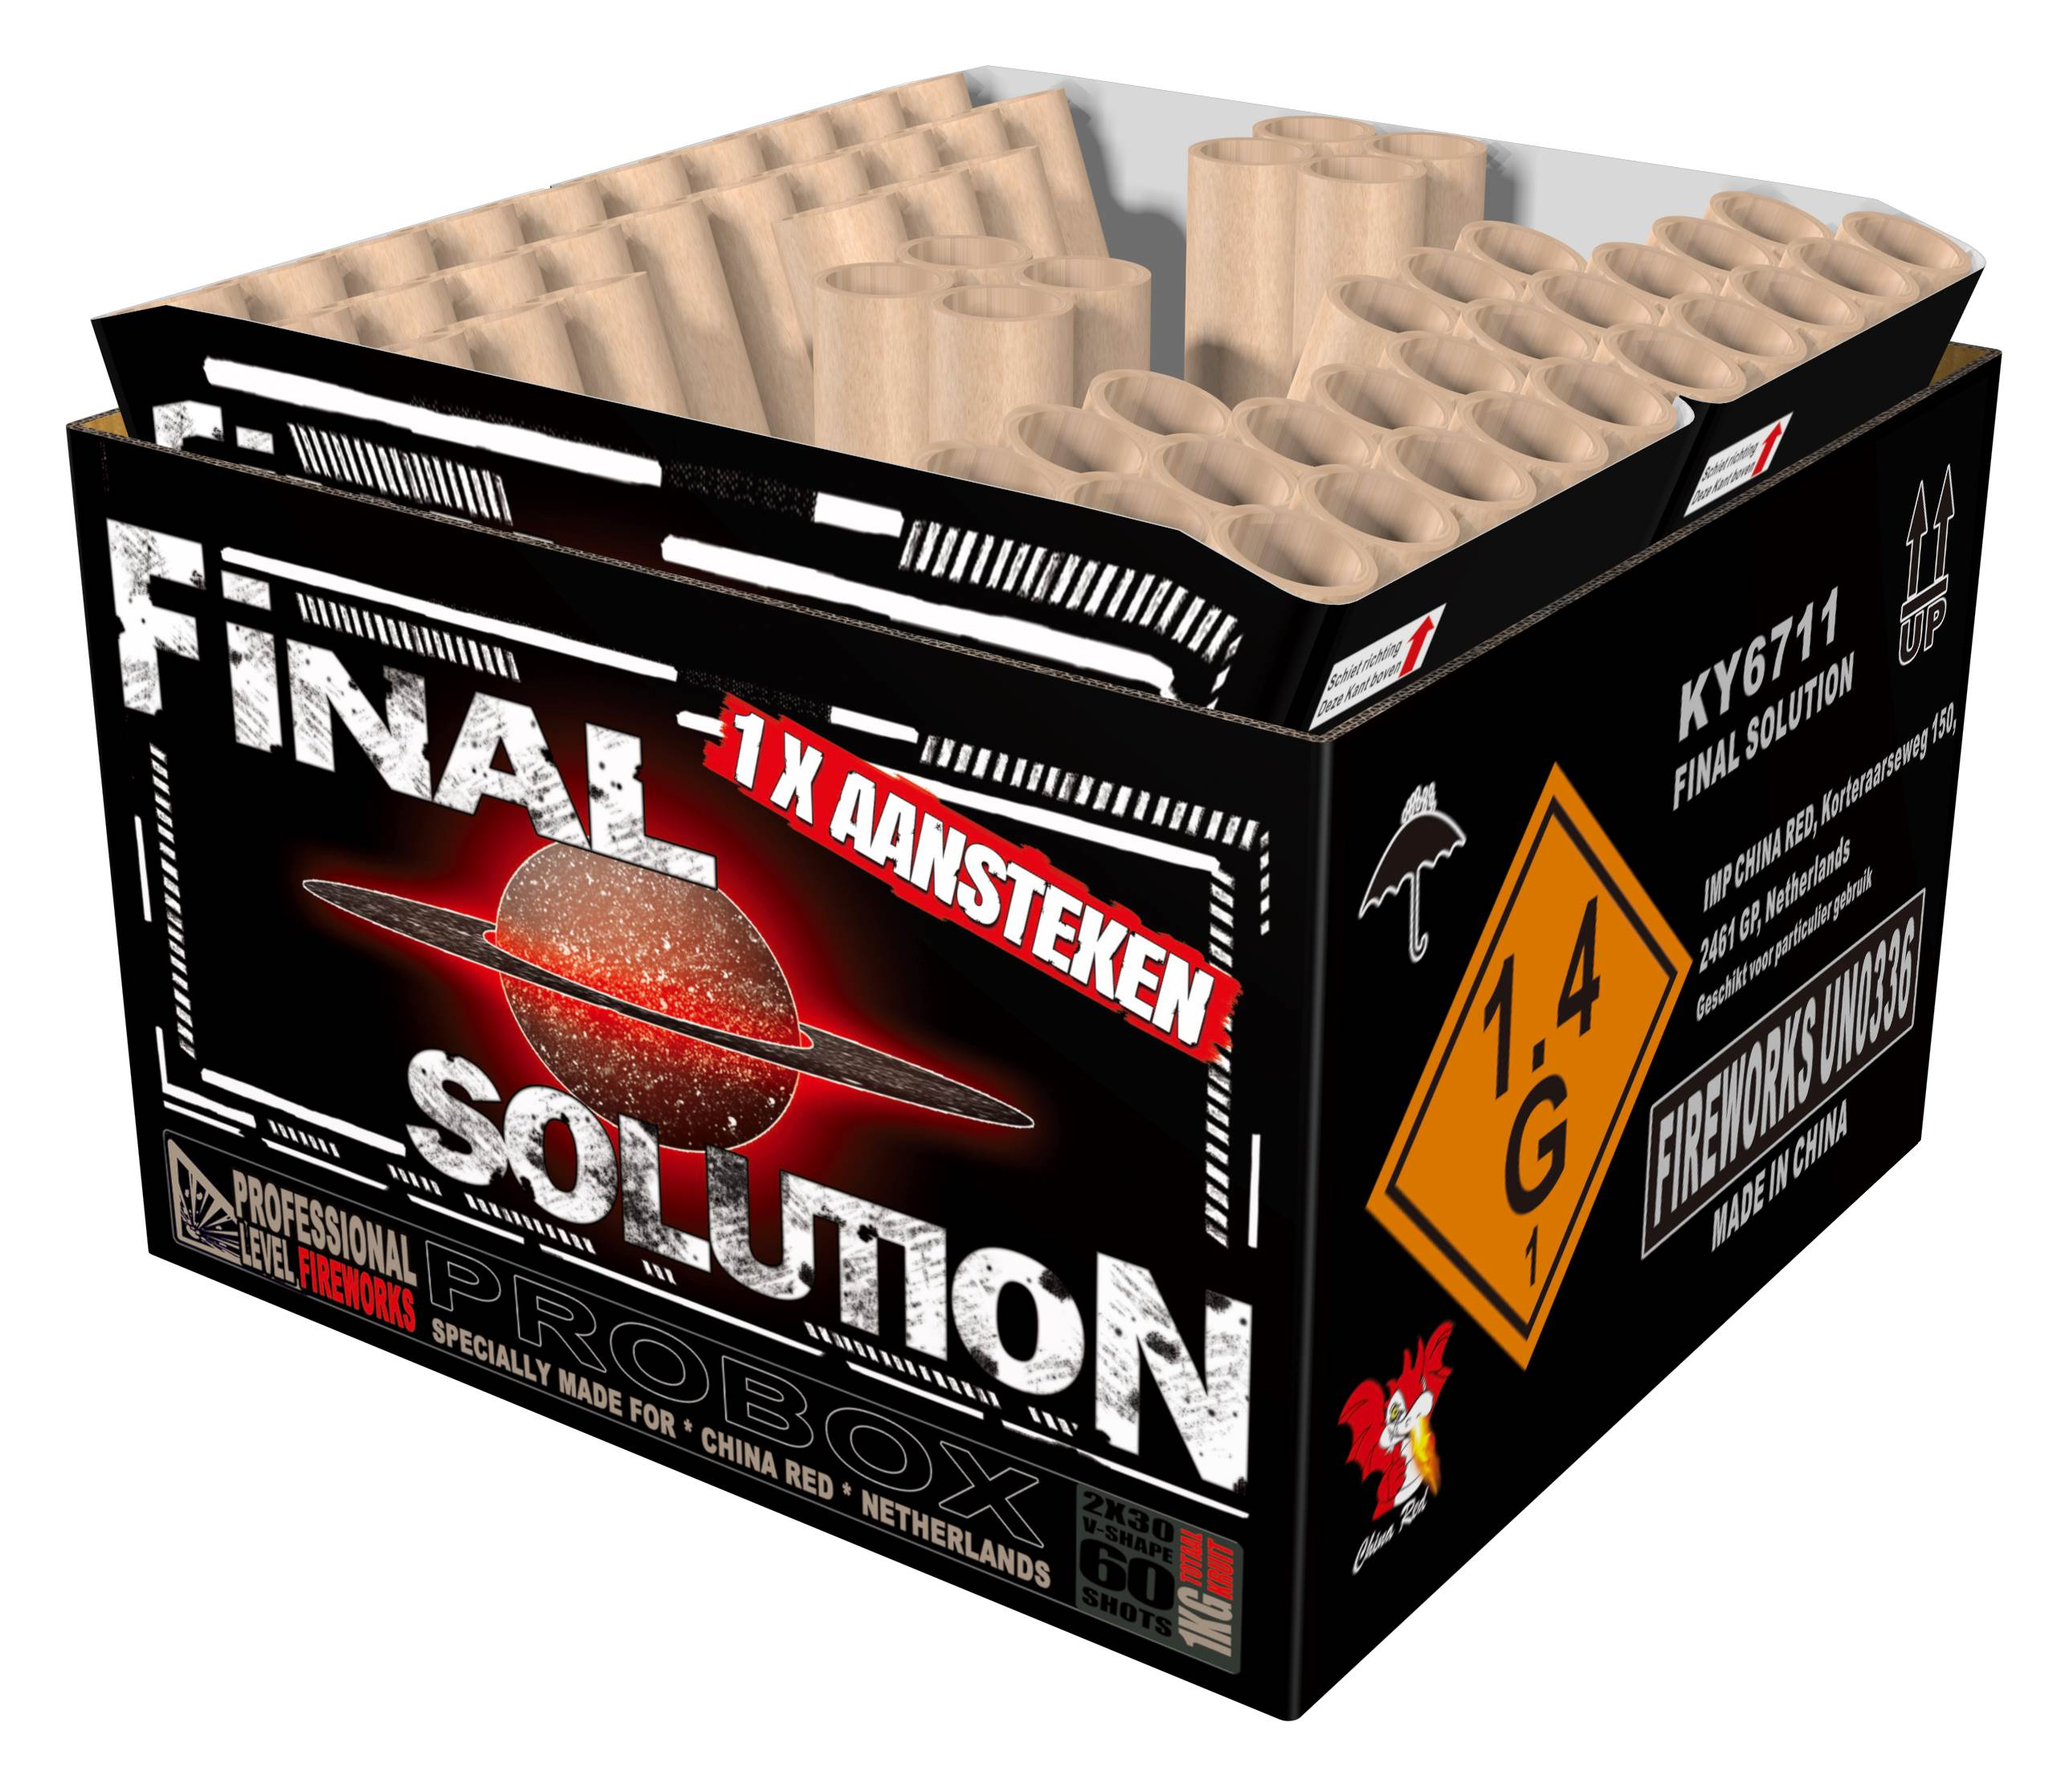 Final Solution (Compound)